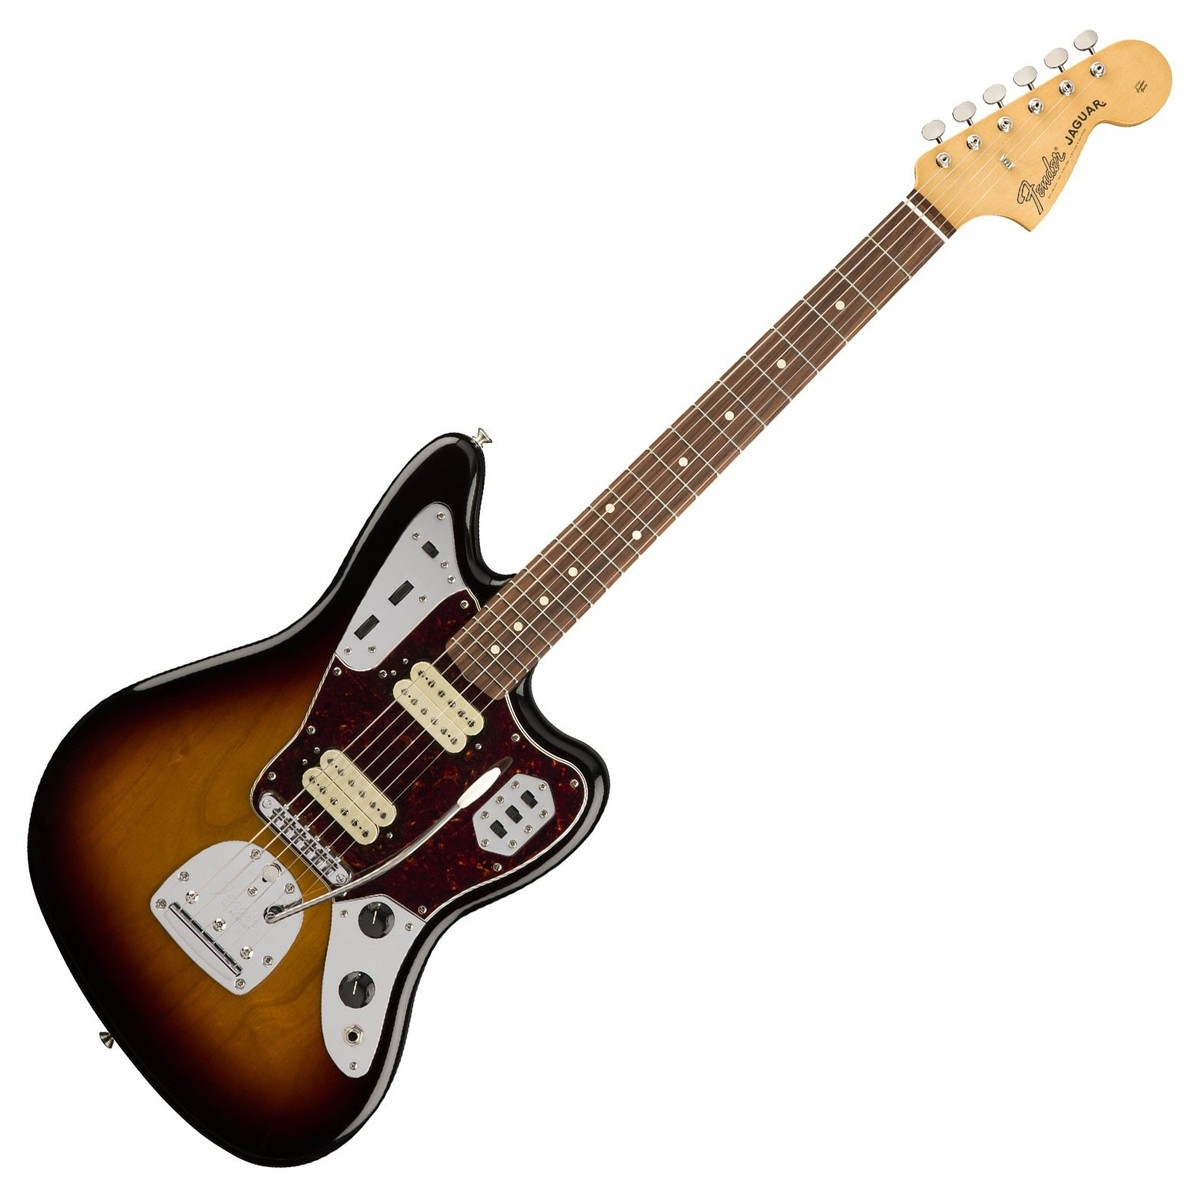 DISC Fender Classic Player Jaguar Special HH PF, 3 Tone Sunburst at  Gear4musicGear4music